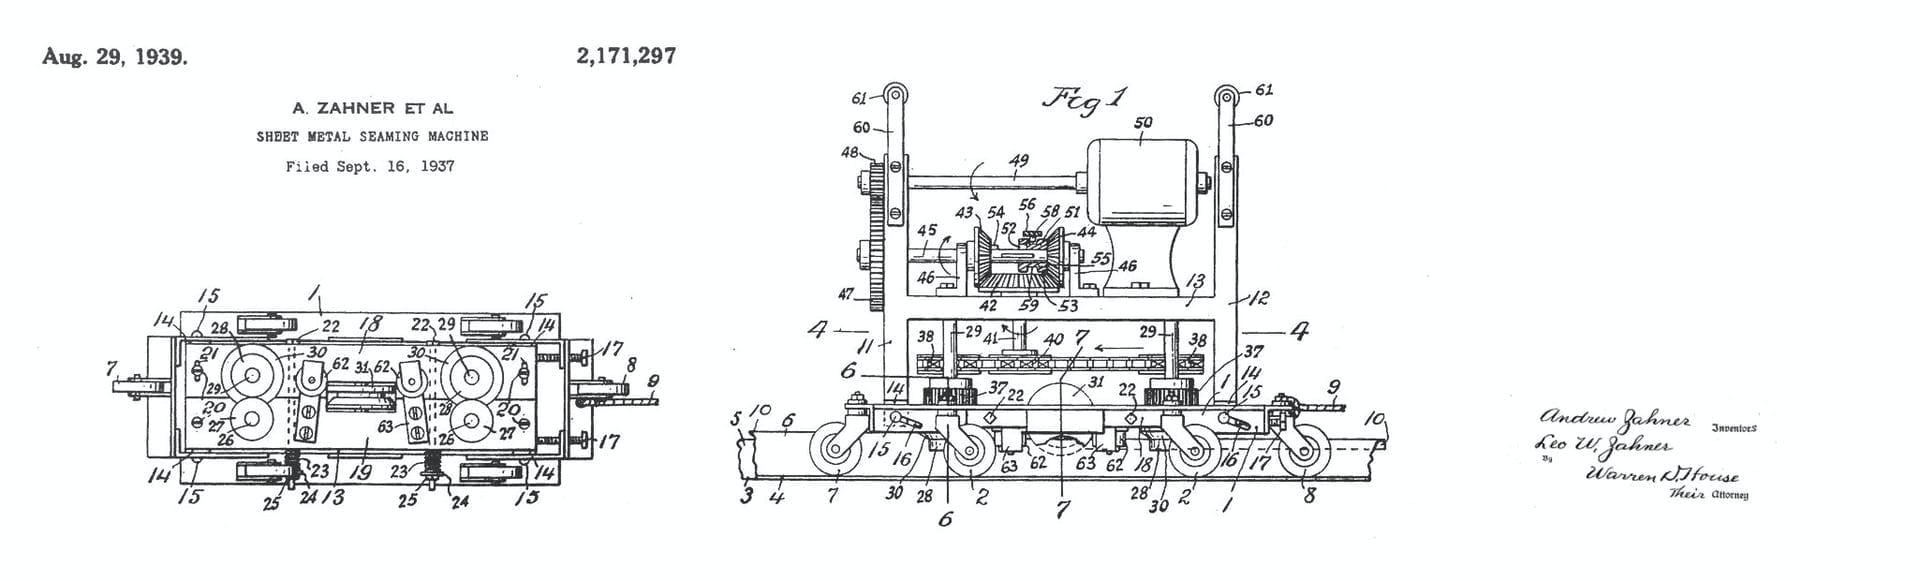 Zahner patent for historic Sheet Metal Seaming Machine.